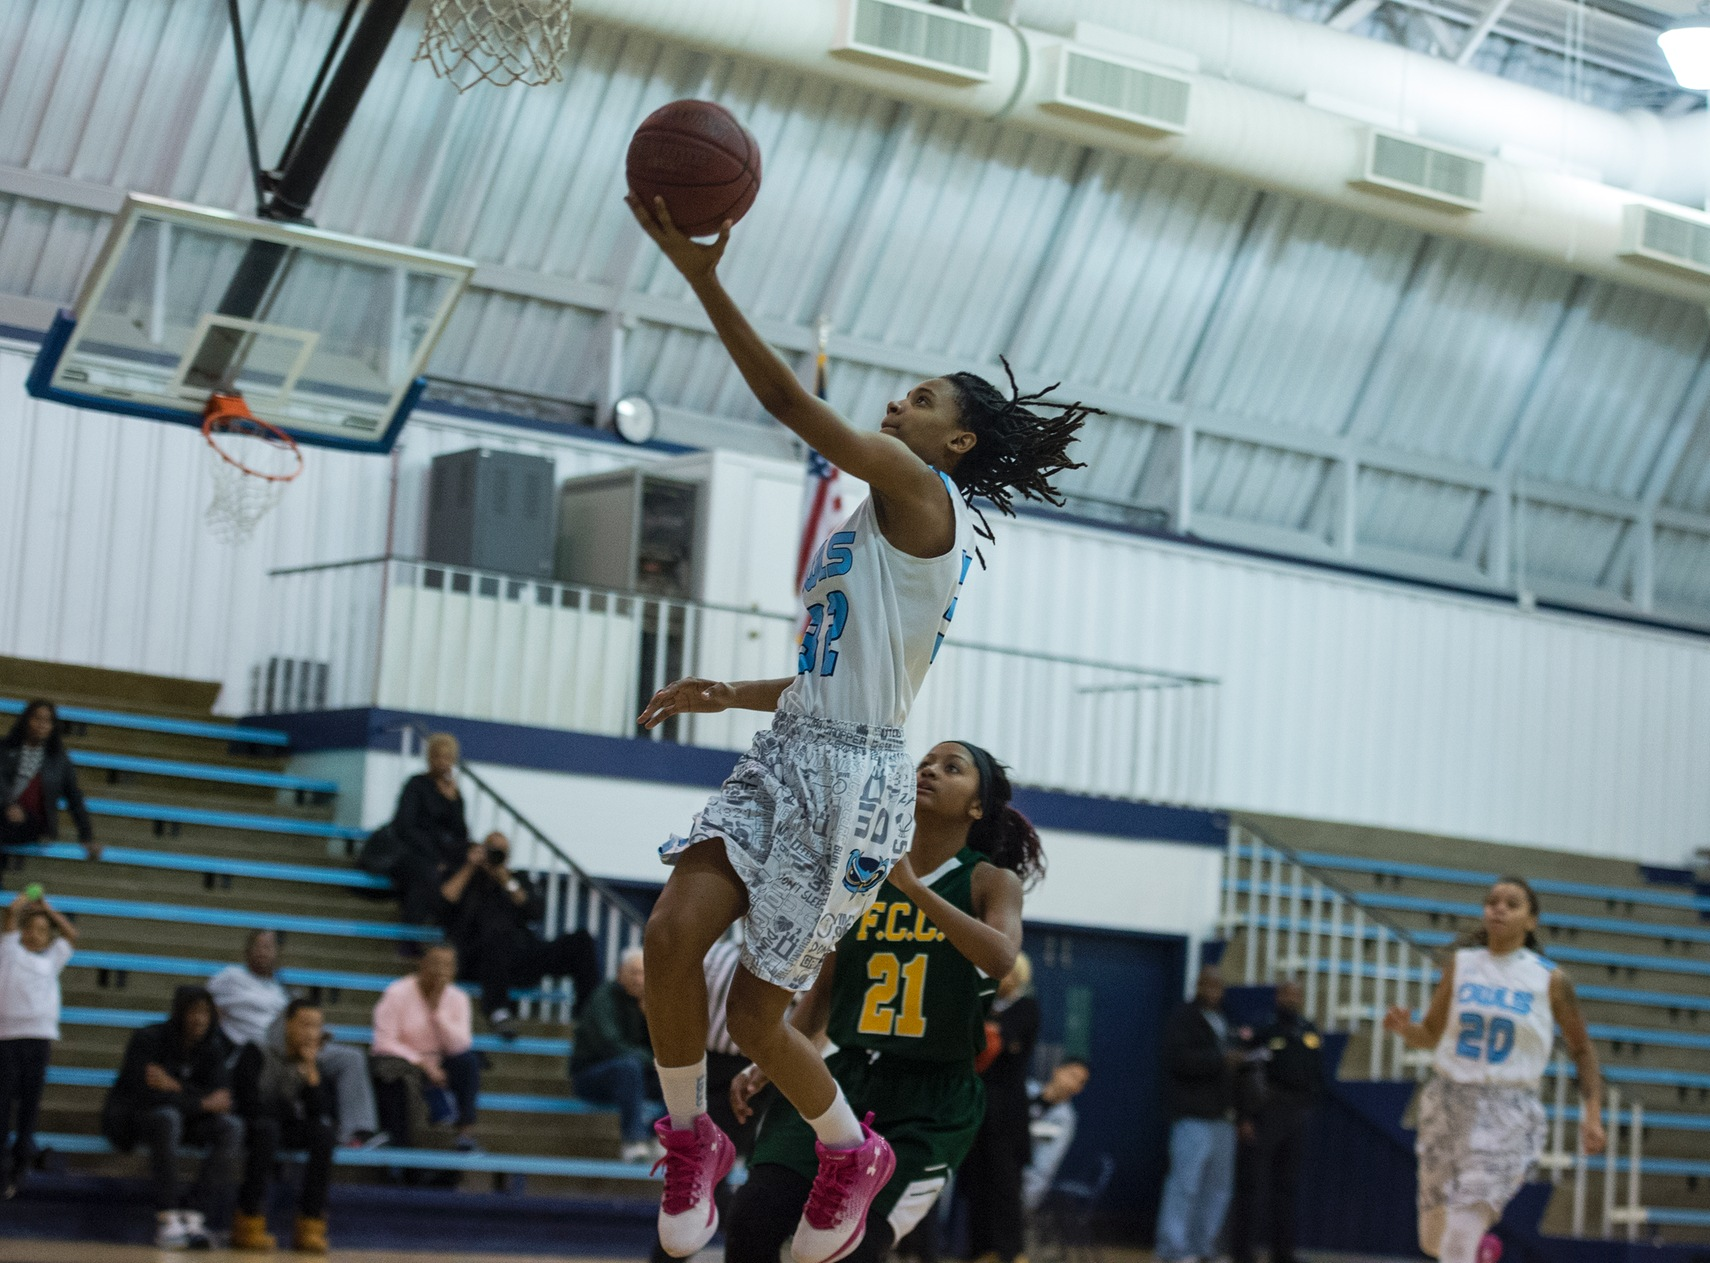 Greene's 25 Points Powers Prince George's Women's Basketball Past Butler County 62-57 And Into NJCAA Region XX Championship Game